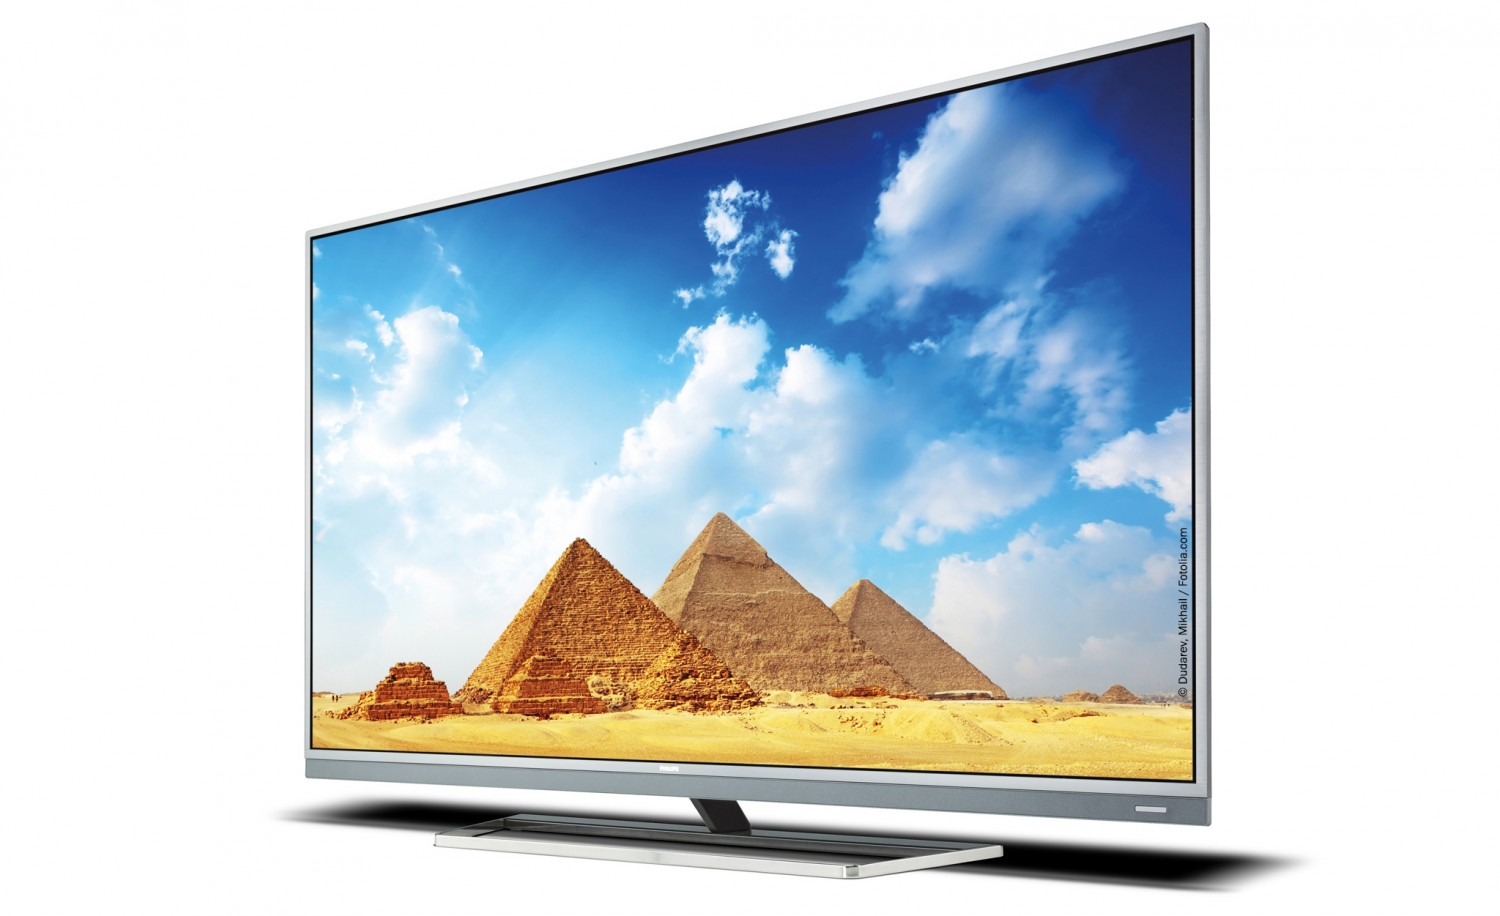 test fernseher philips 55pus7502 sehr gut seite 1. Black Bedroom Furniture Sets. Home Design Ideas